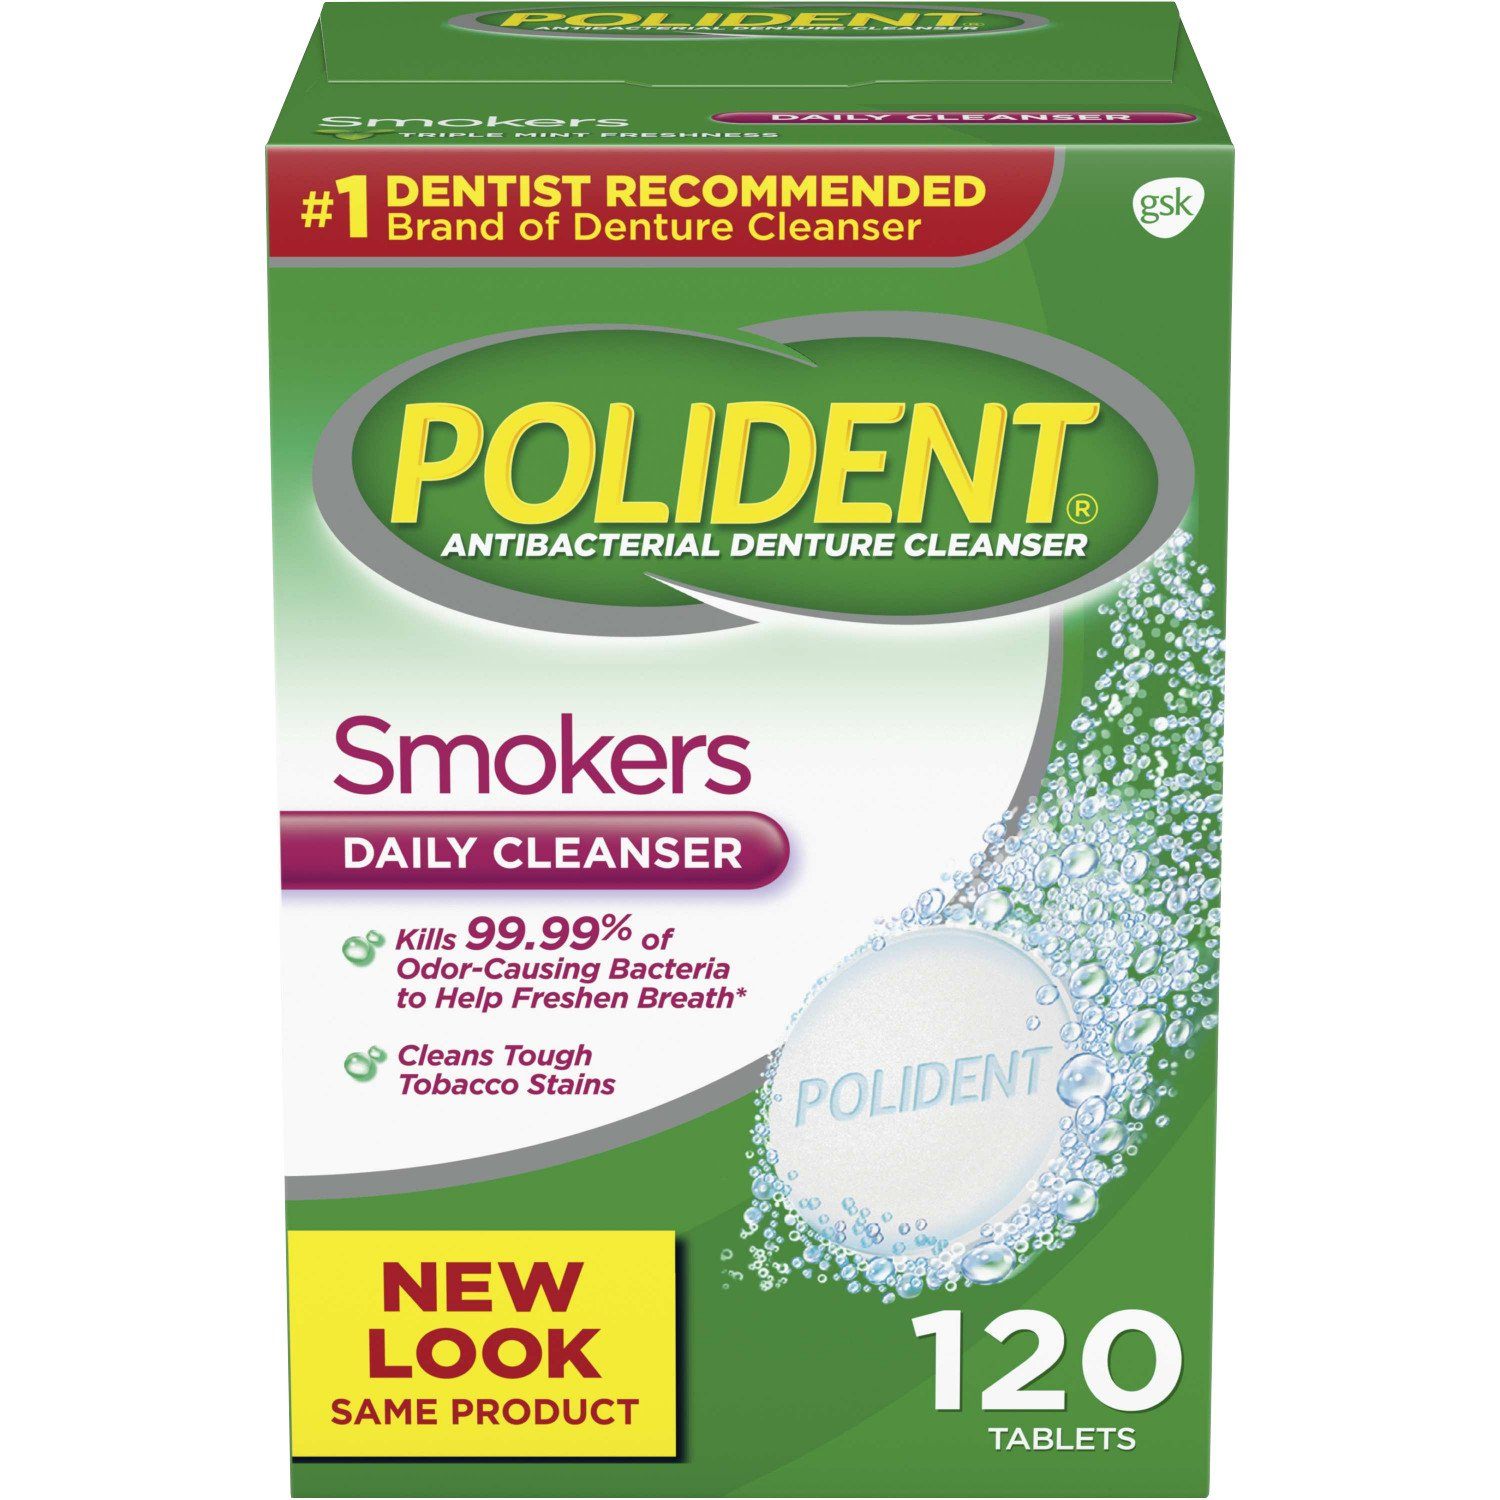 Polident Smokers Antibacterial Denture Cleanser Effervescent Tablets, 120 count GlaxoSmithKline 310158320852